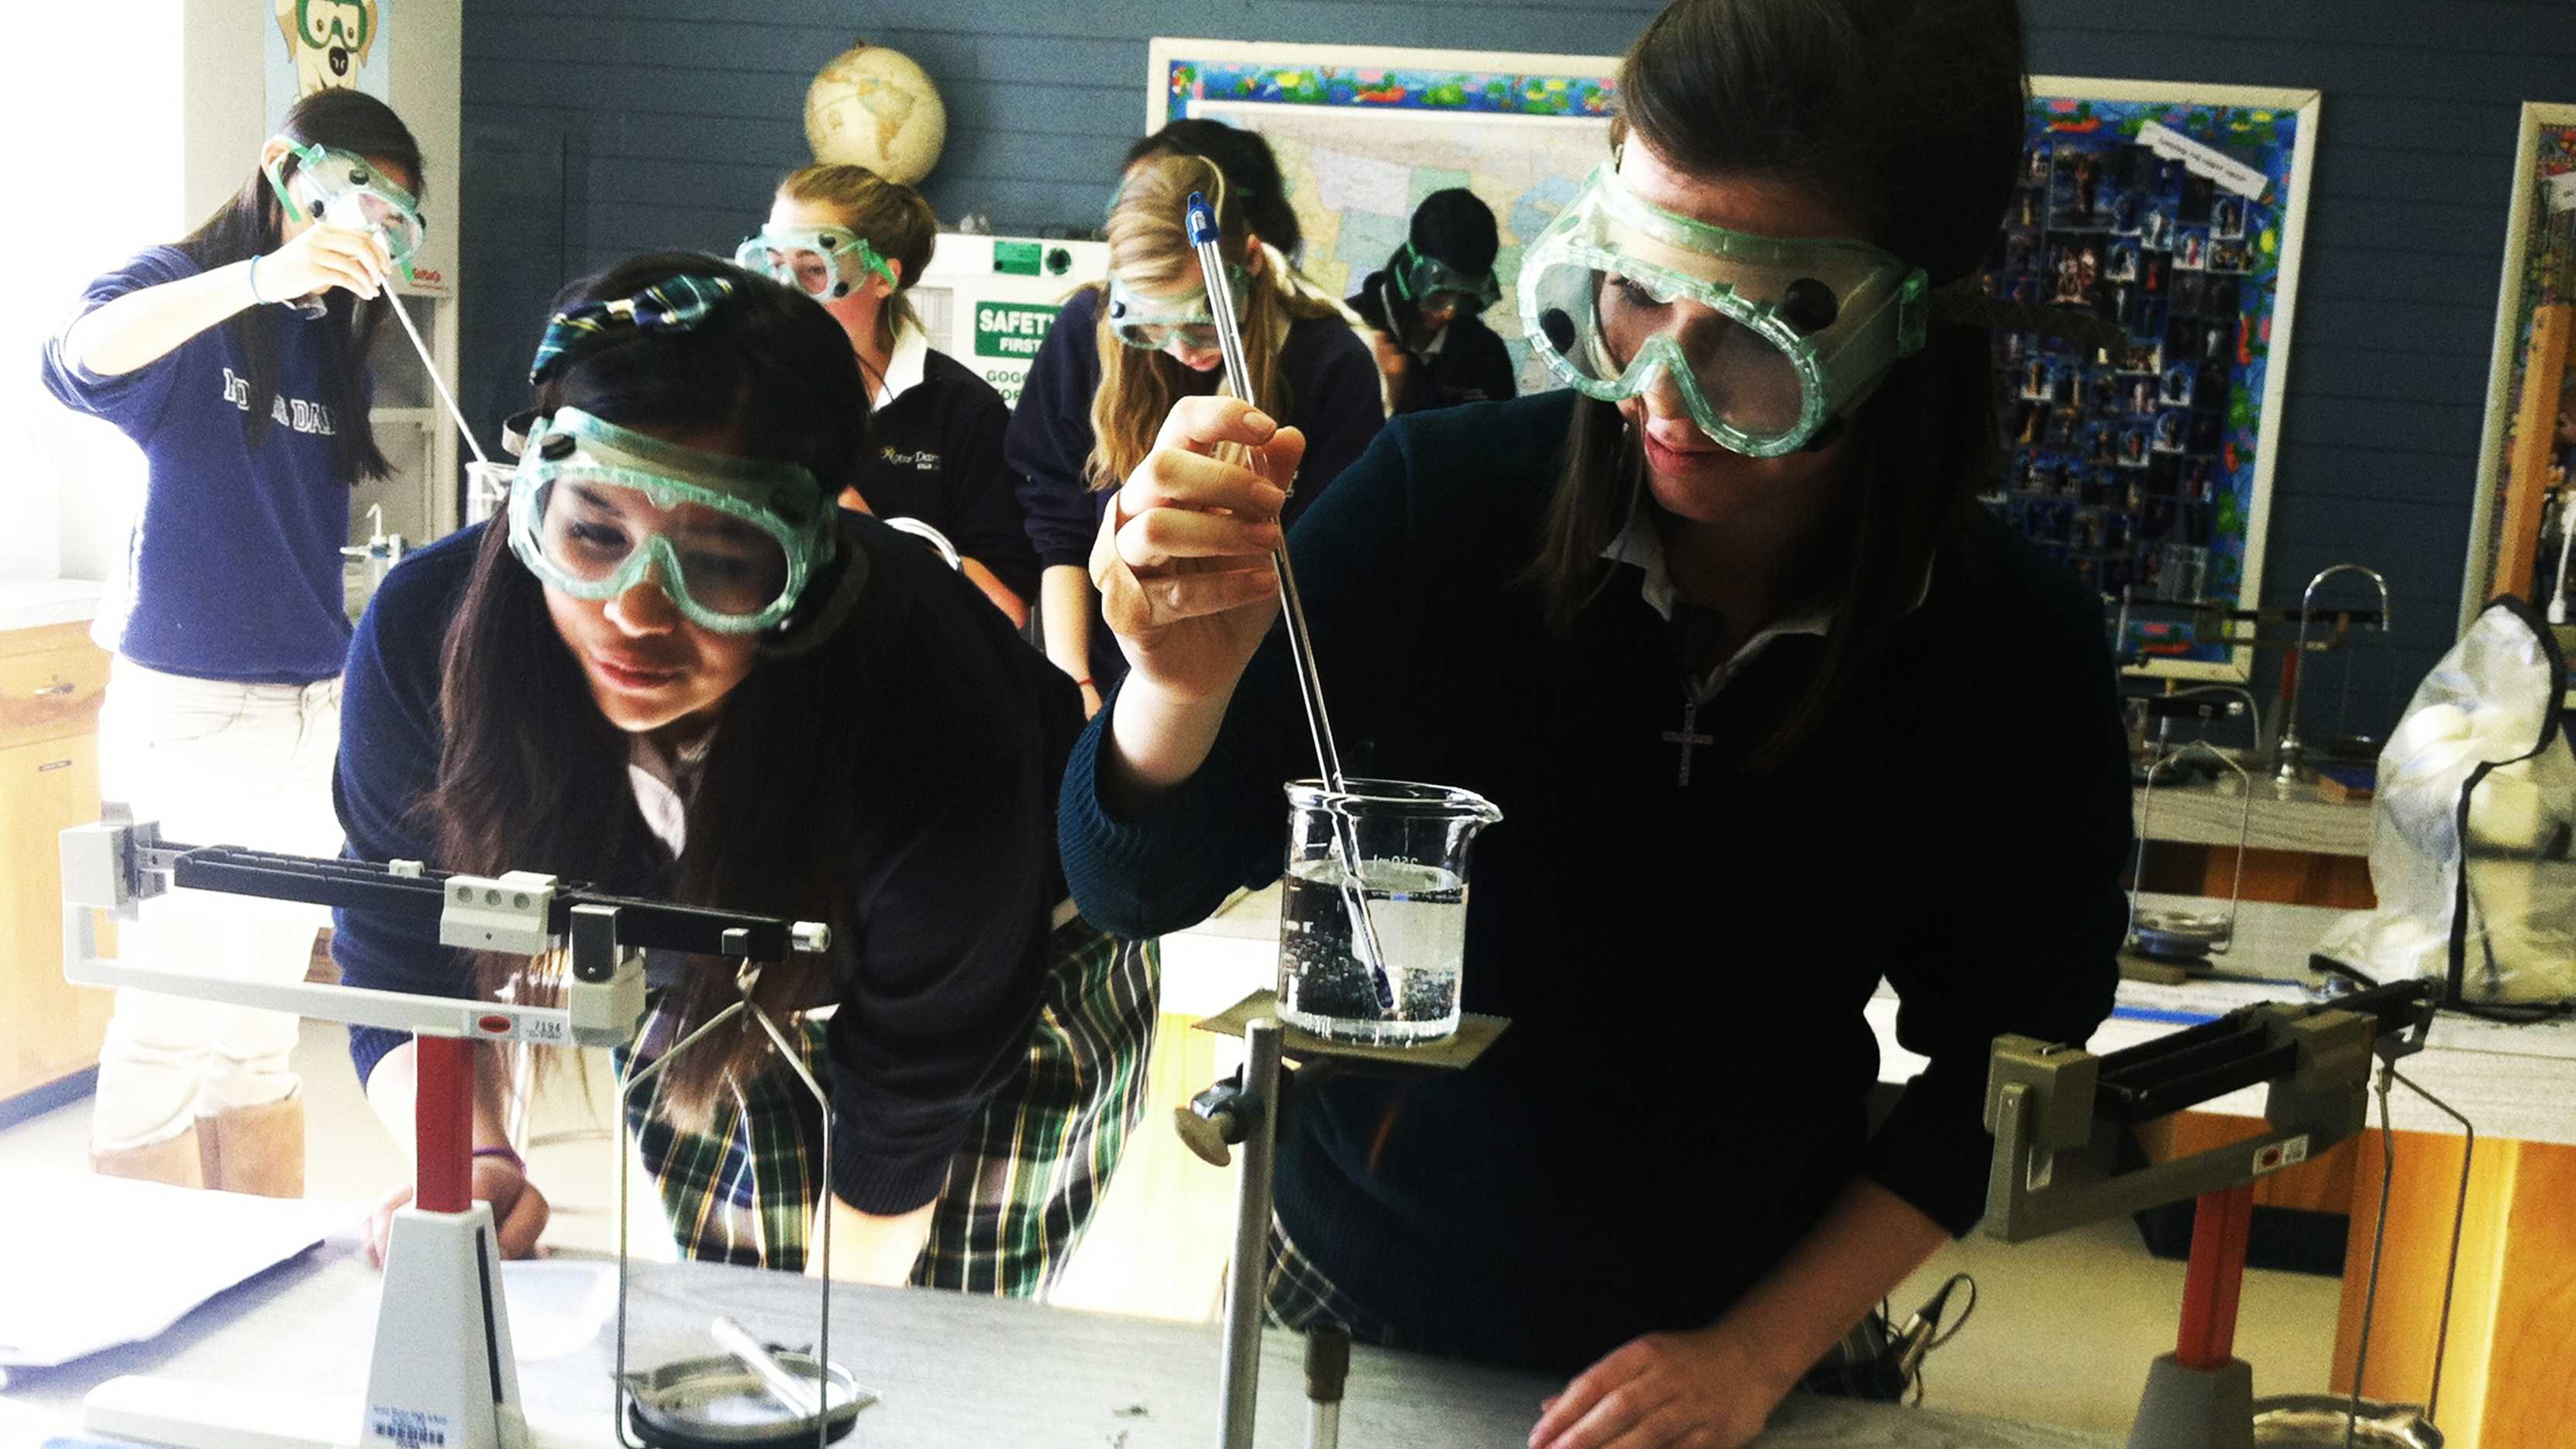 Notre Dame High School students Mariah O'Grady and Johanna Nicole Rivas work on a lab project in their chemistry class.